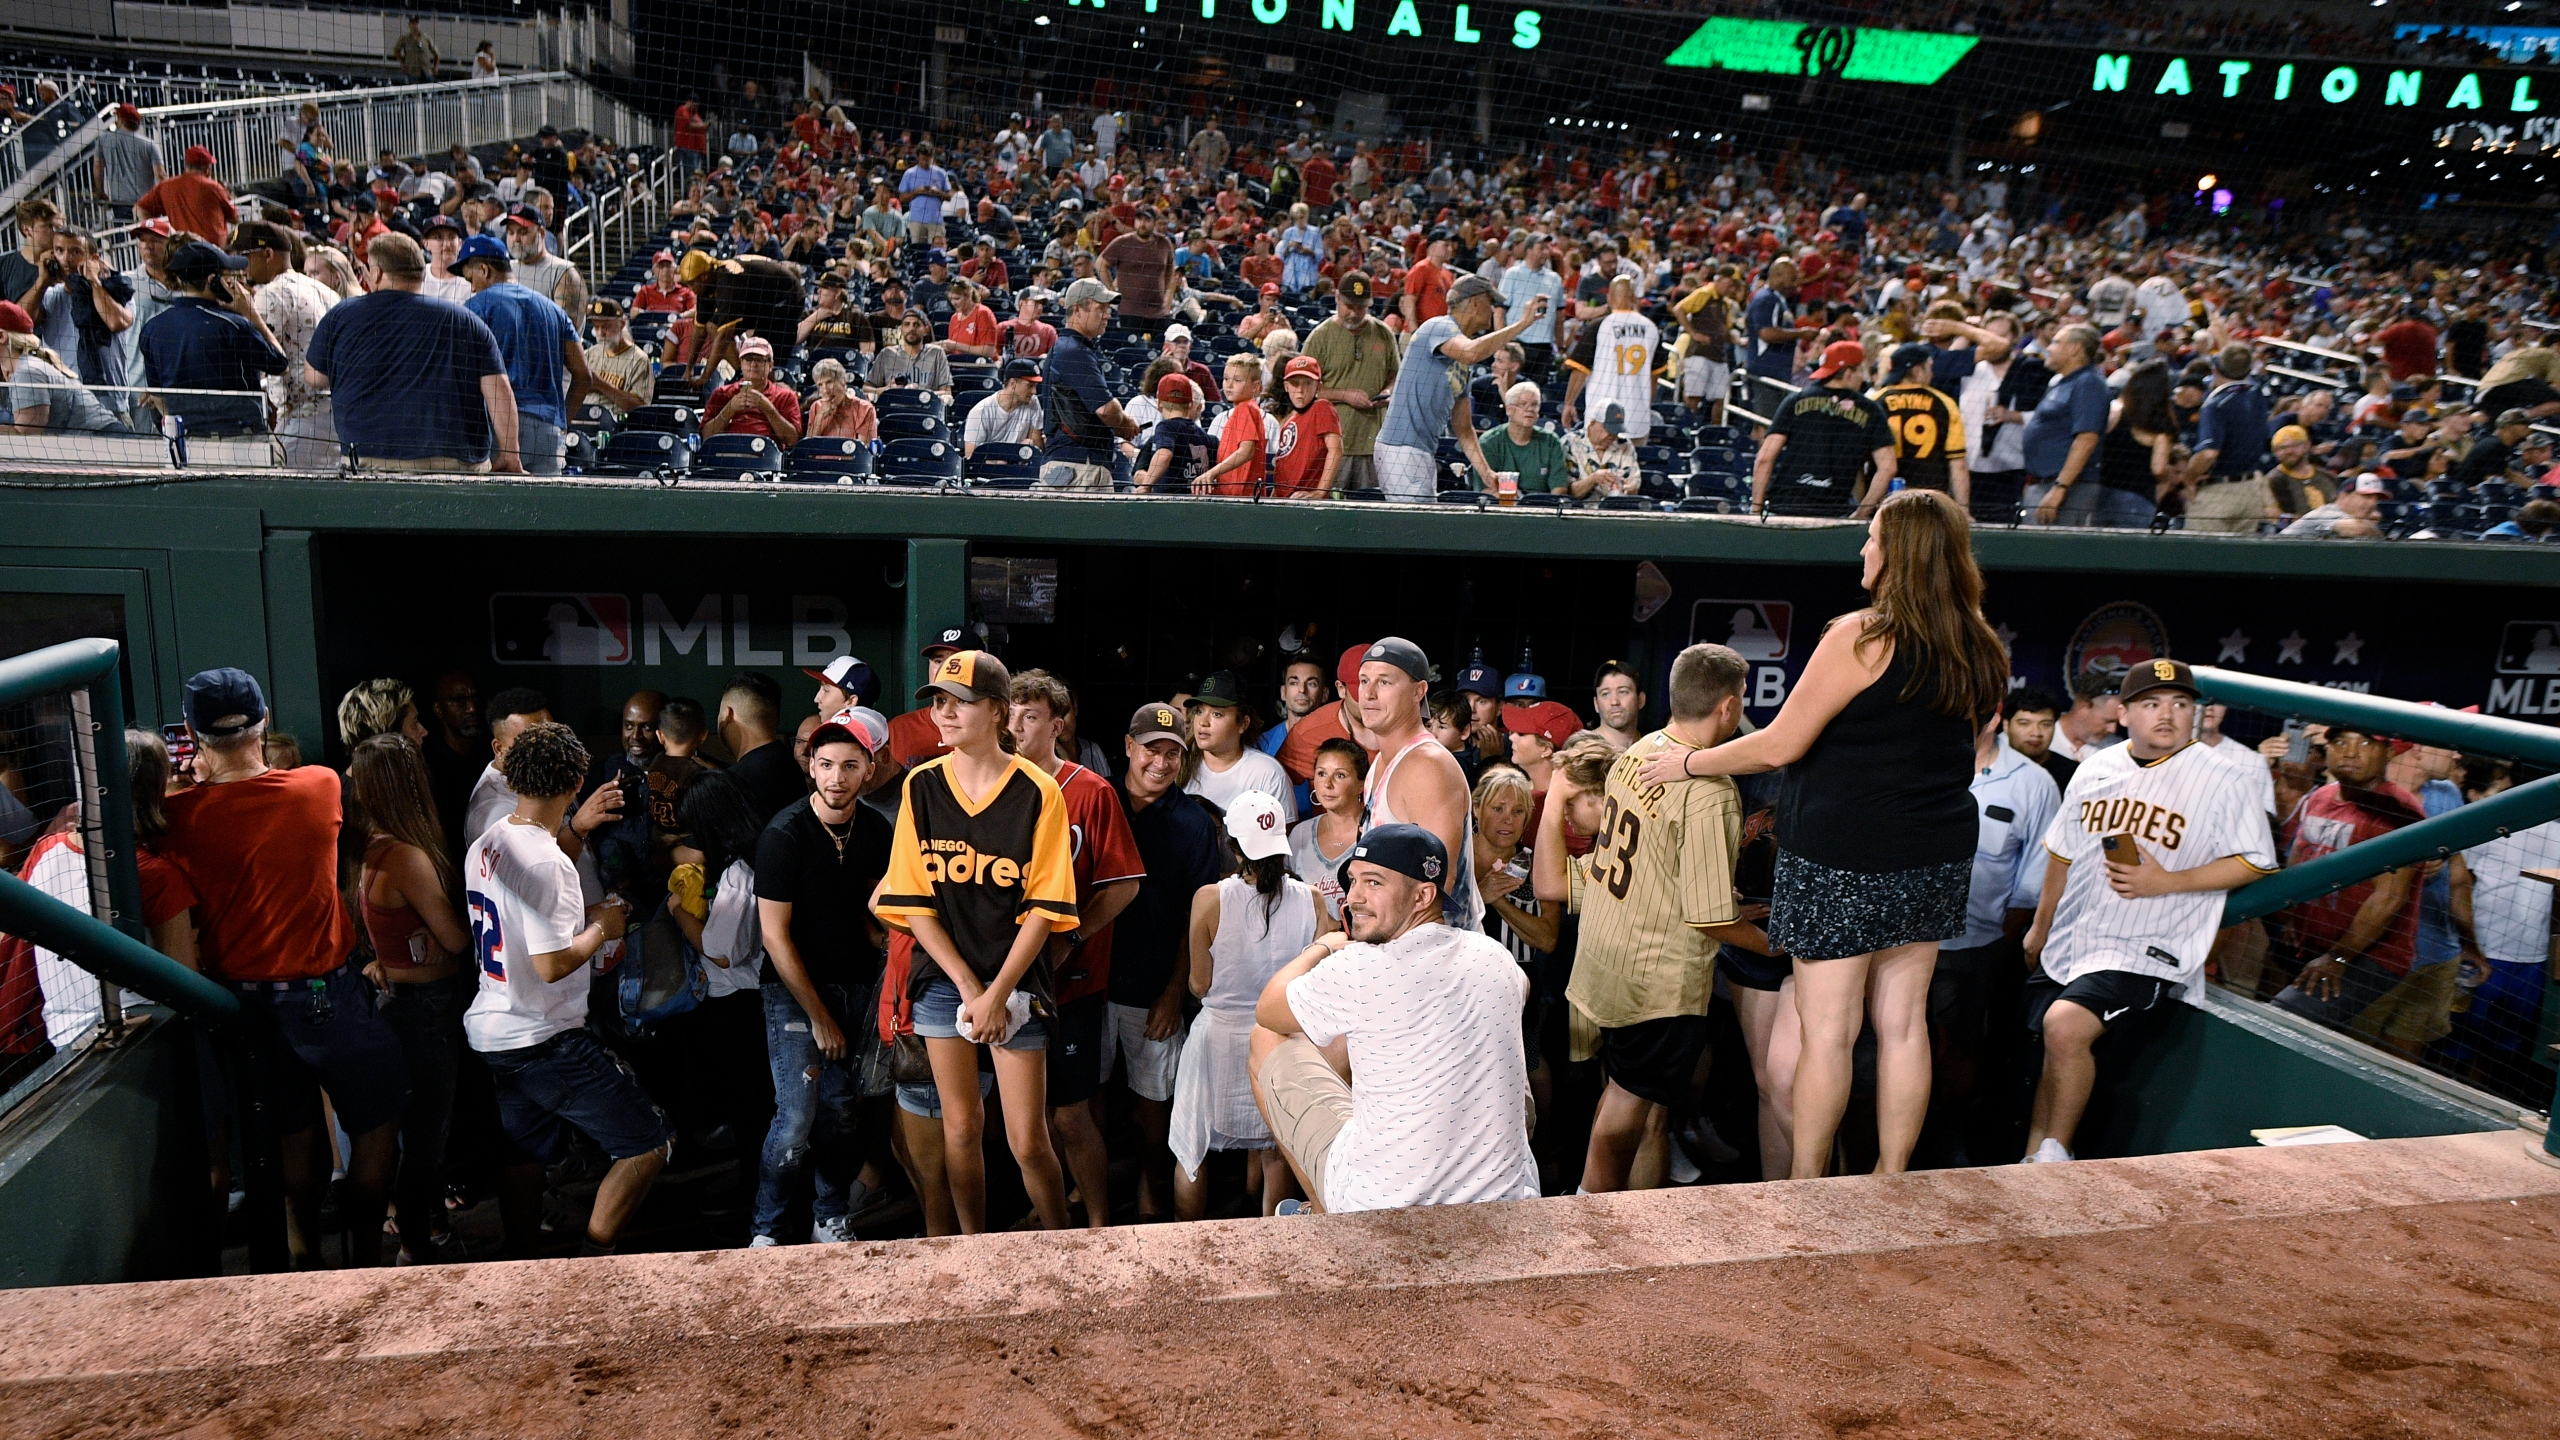 At least 4 people were wounded in a shooting outside Nationals Park that sent players and fans scrambling, police say